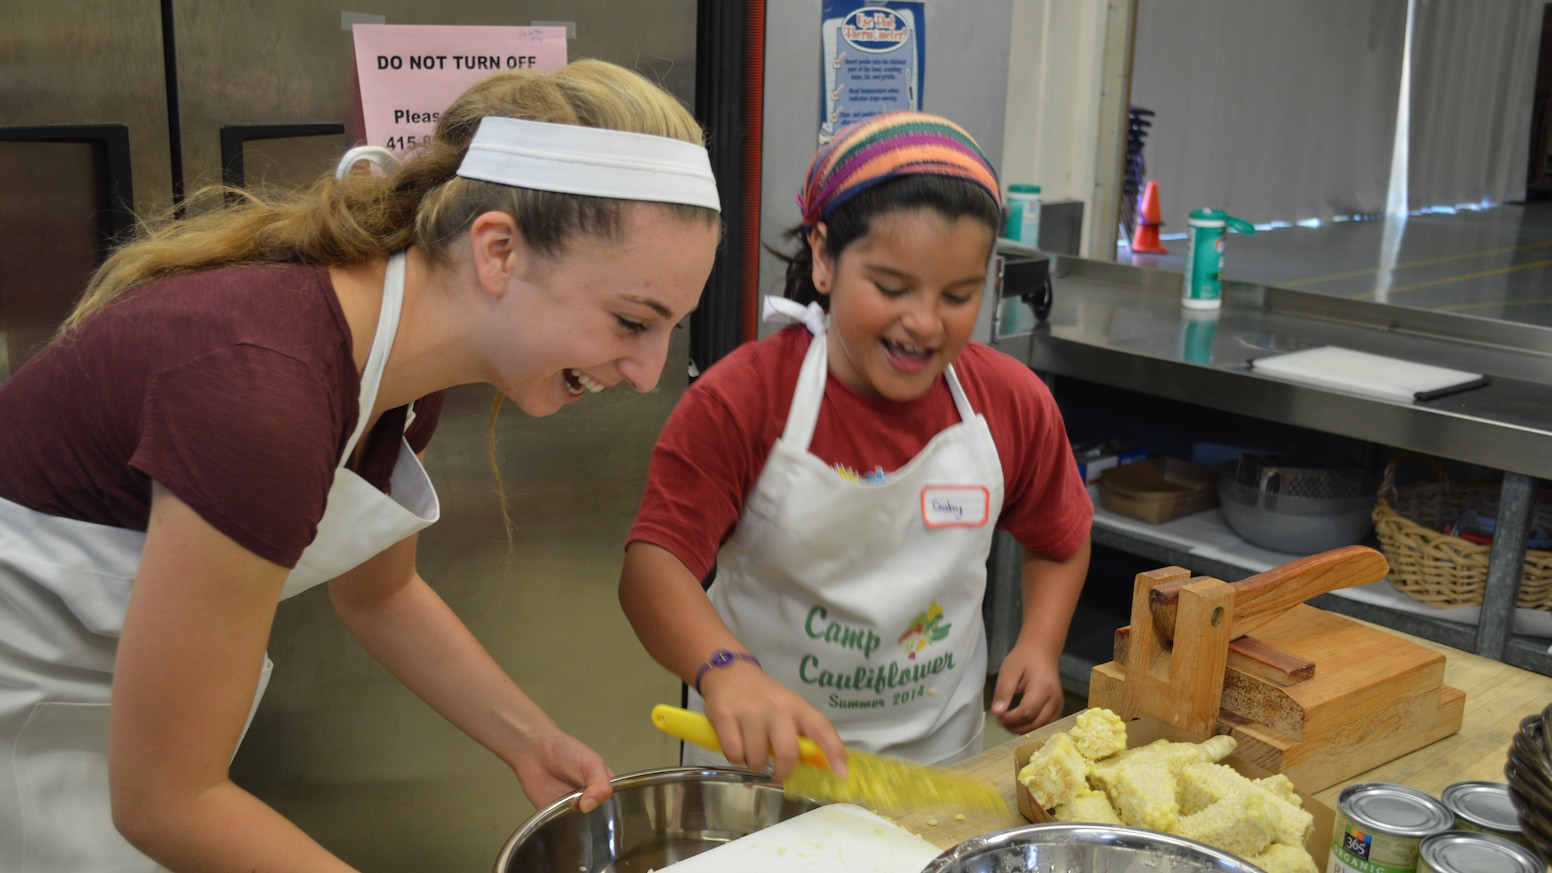 Camp Cauliflower is a hands-on cooking program where children learn the importance of eating healthy, nutritious and delicious foods.